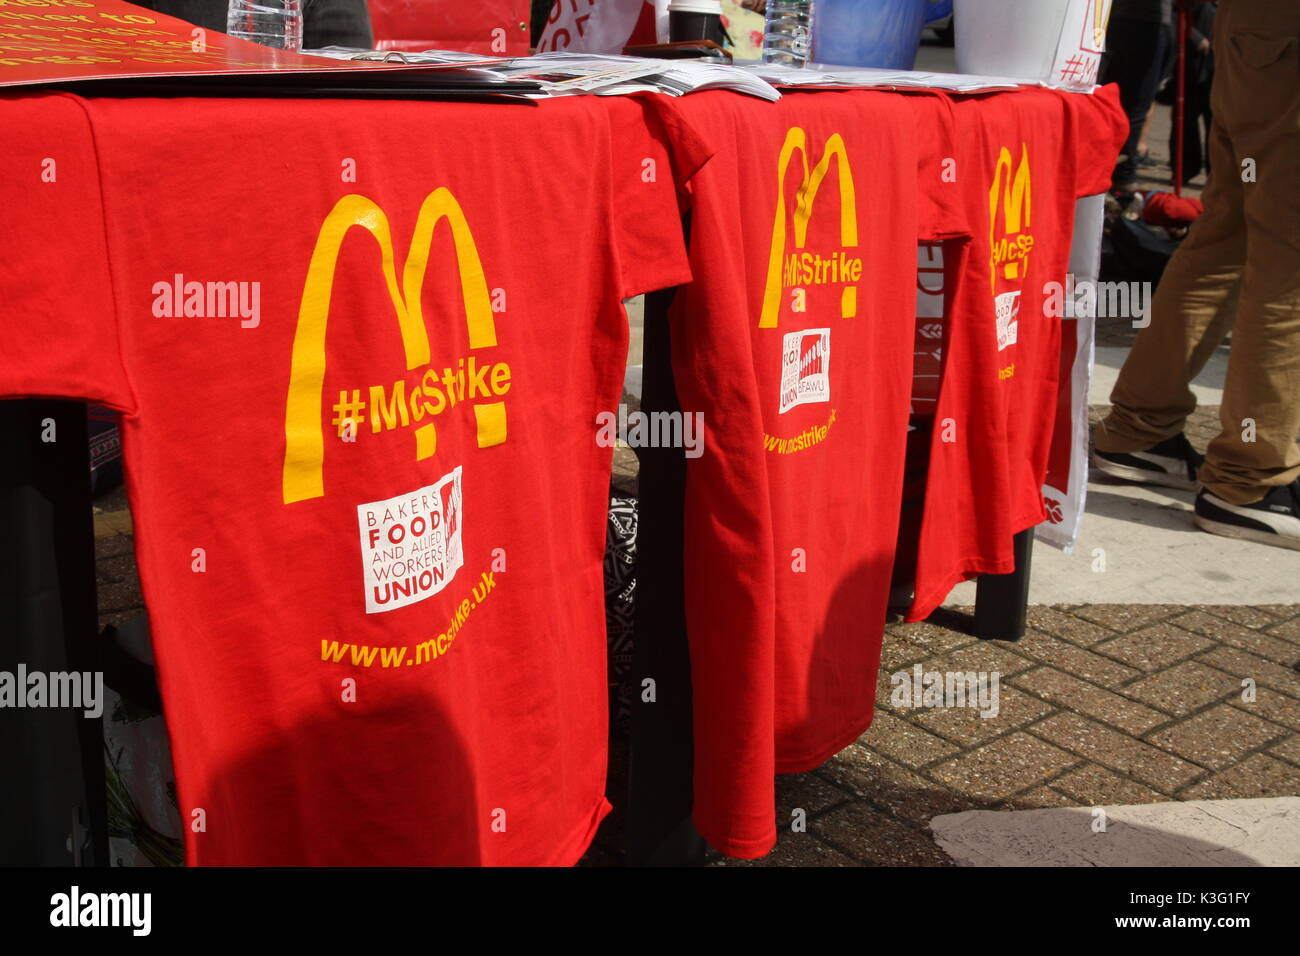 London, UK, 2nd September 2017.Mc Donalds workers and their supporters rally outside the company's HQ in East Finchley. The Bakers Food and Allied Workers Union (BFAWU) organised the rally which precedes a strike at two McDonalds branches on Monday. 'McStrike' T-shirts hang from a campaign stall.  Roland Ravenhill/Alamy Live News - Stock Image